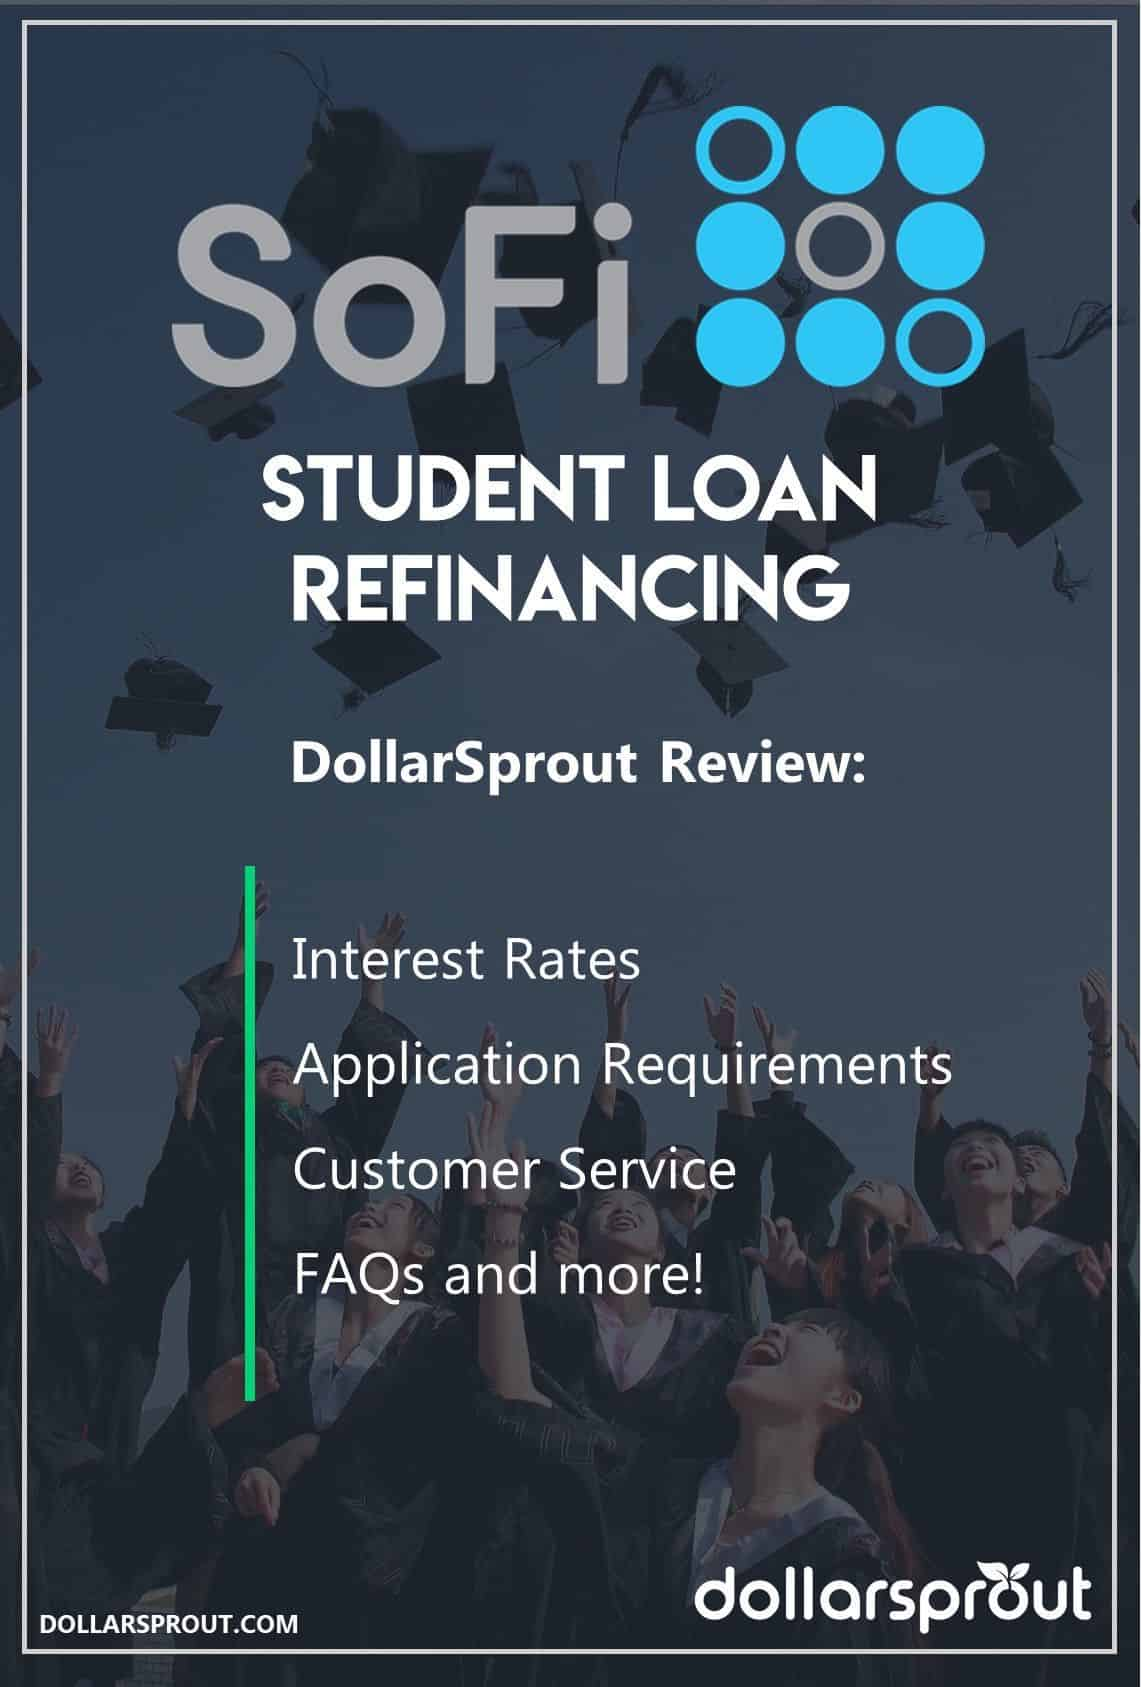 Are you interested in refinancing your student loans? You could potentially save tens of thousands of dollars by refinancing a student loan through a company like SoFi. Check out our review and see what we like about SoFi (and how it is the only company we recommend for student loan refinancing).